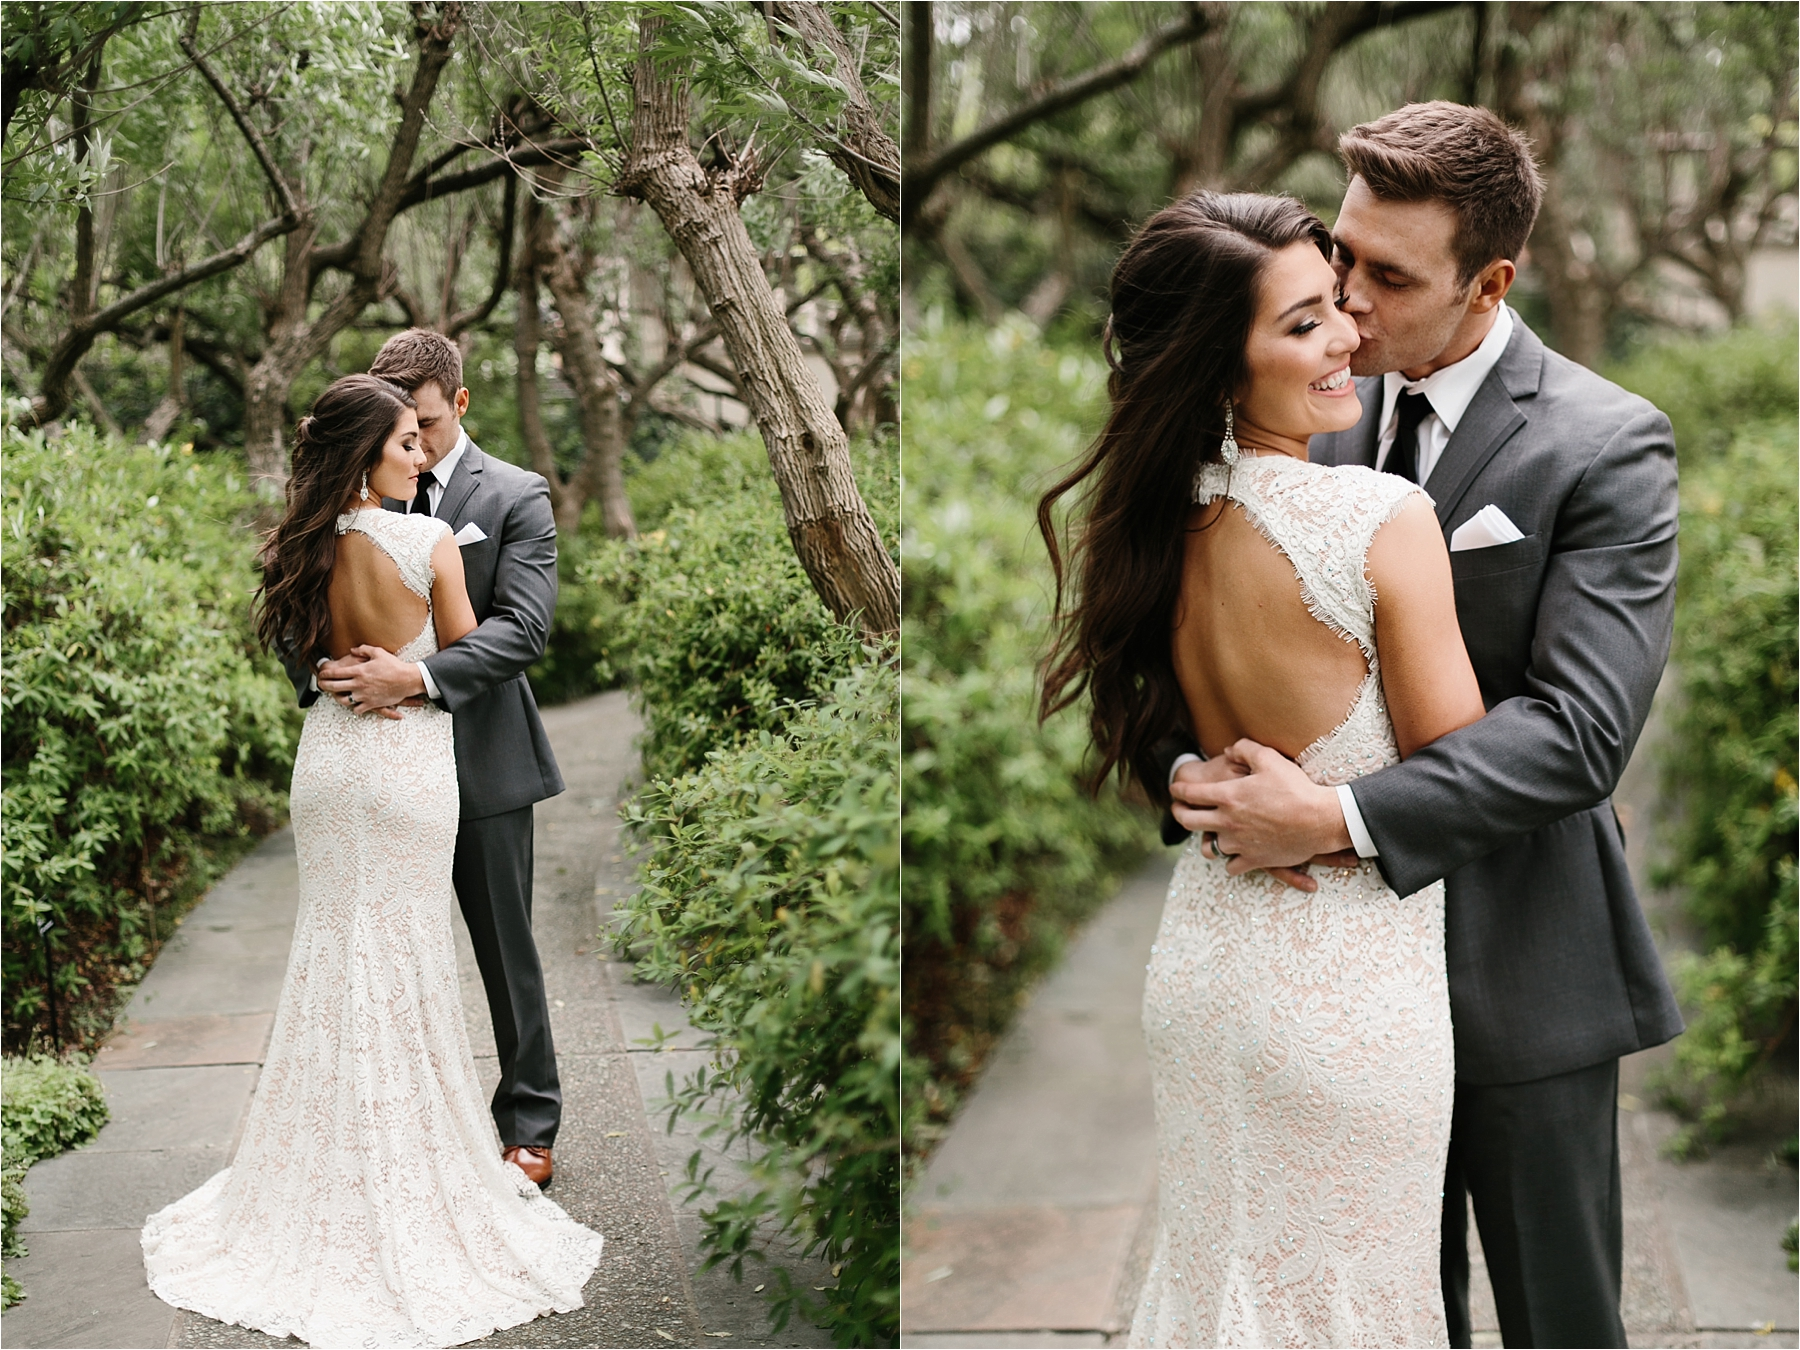 Devyn + Caden __ a Dallas Arboretum Garden Style Wedding by North Texas Wedding Photographer Rachel Meagan Photography __ 042